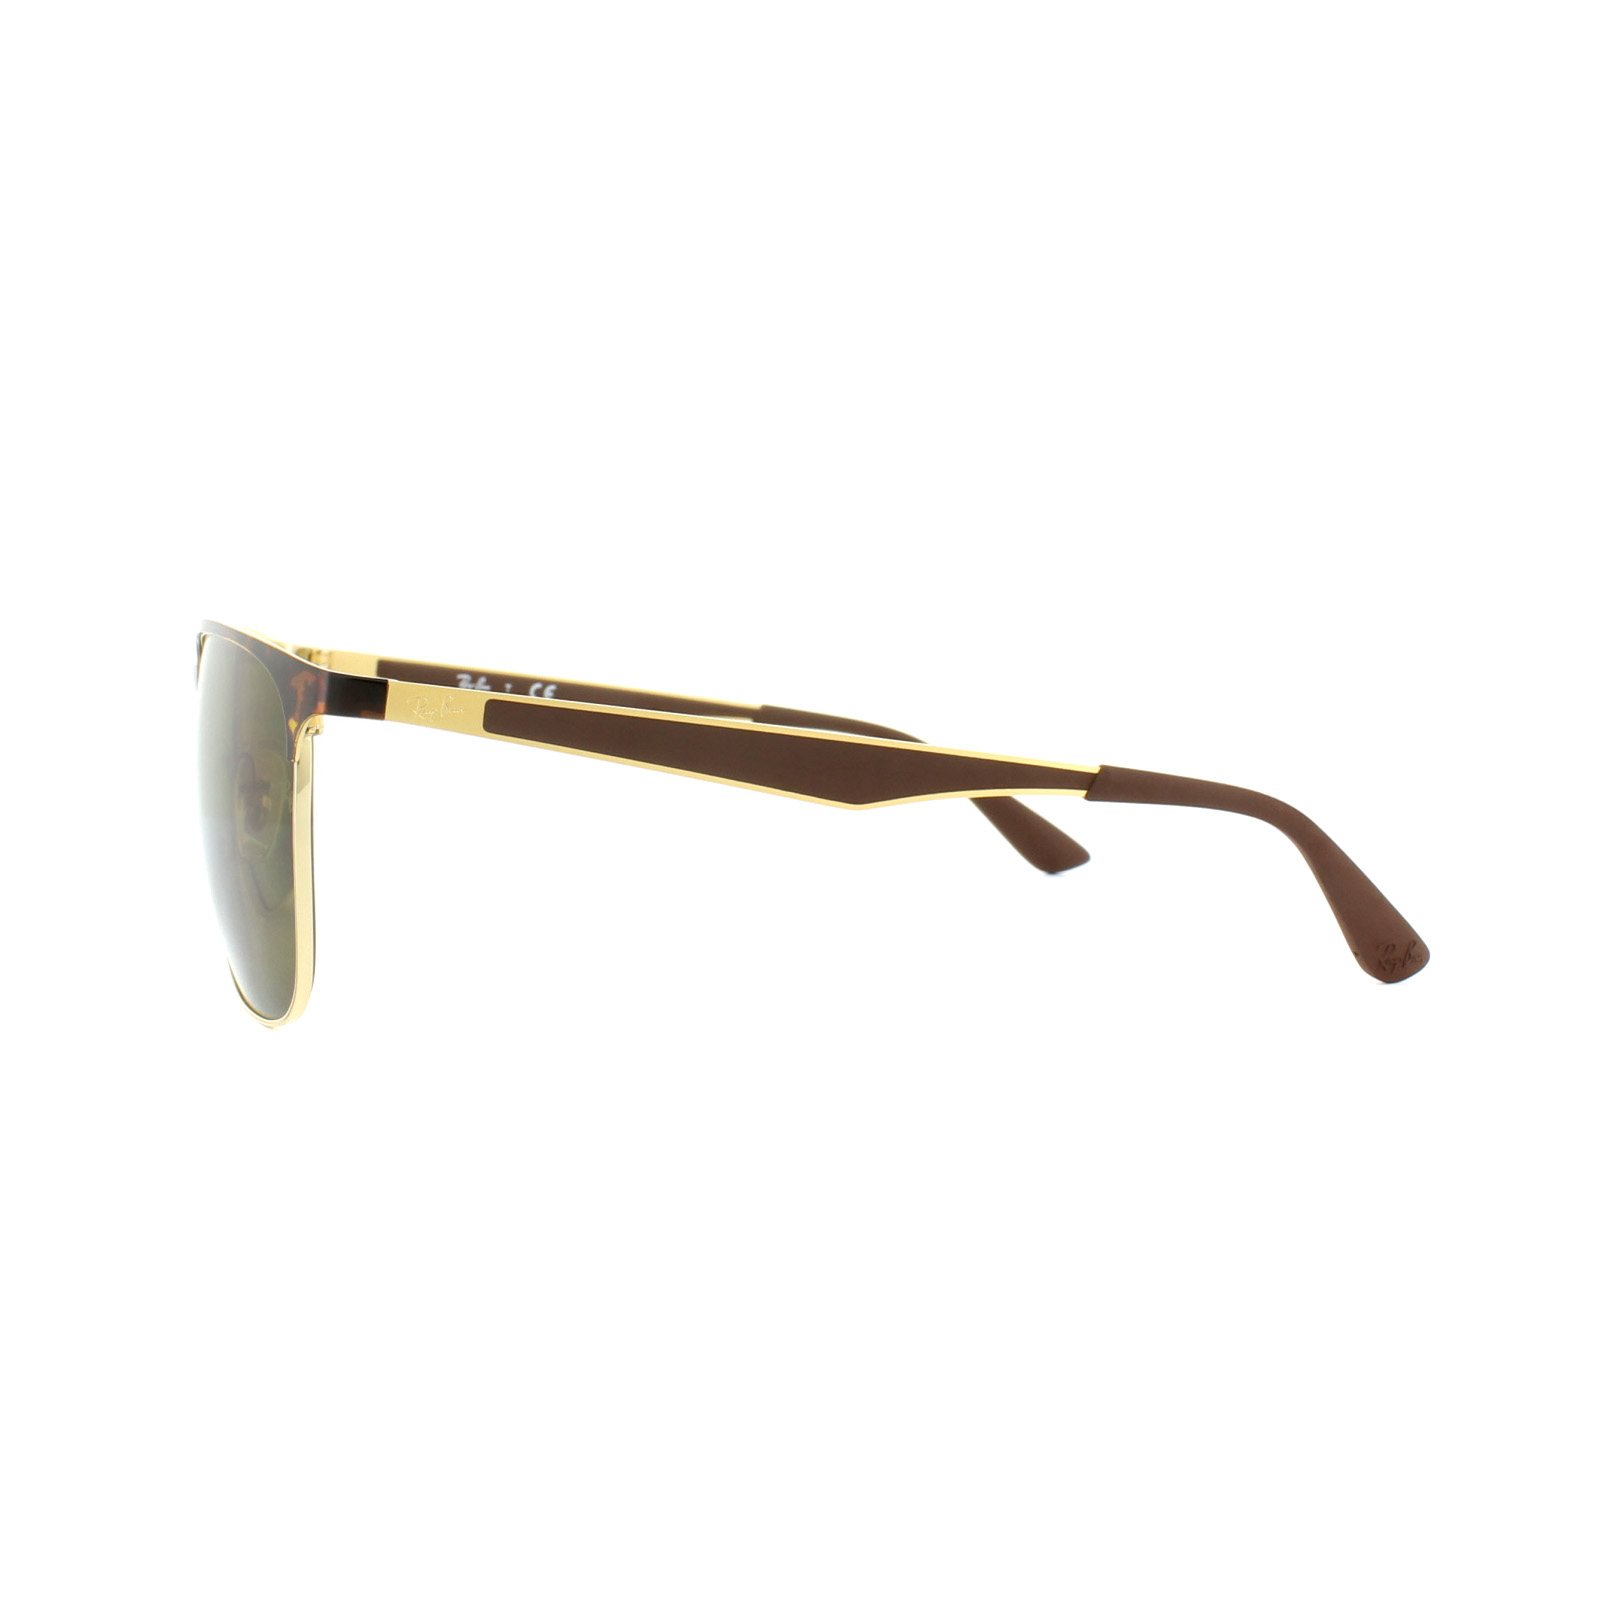 40ad8503d2 Sentinel Ray-Ban Sunglasses 3569 900873 Tortoise Gold Brown B-15